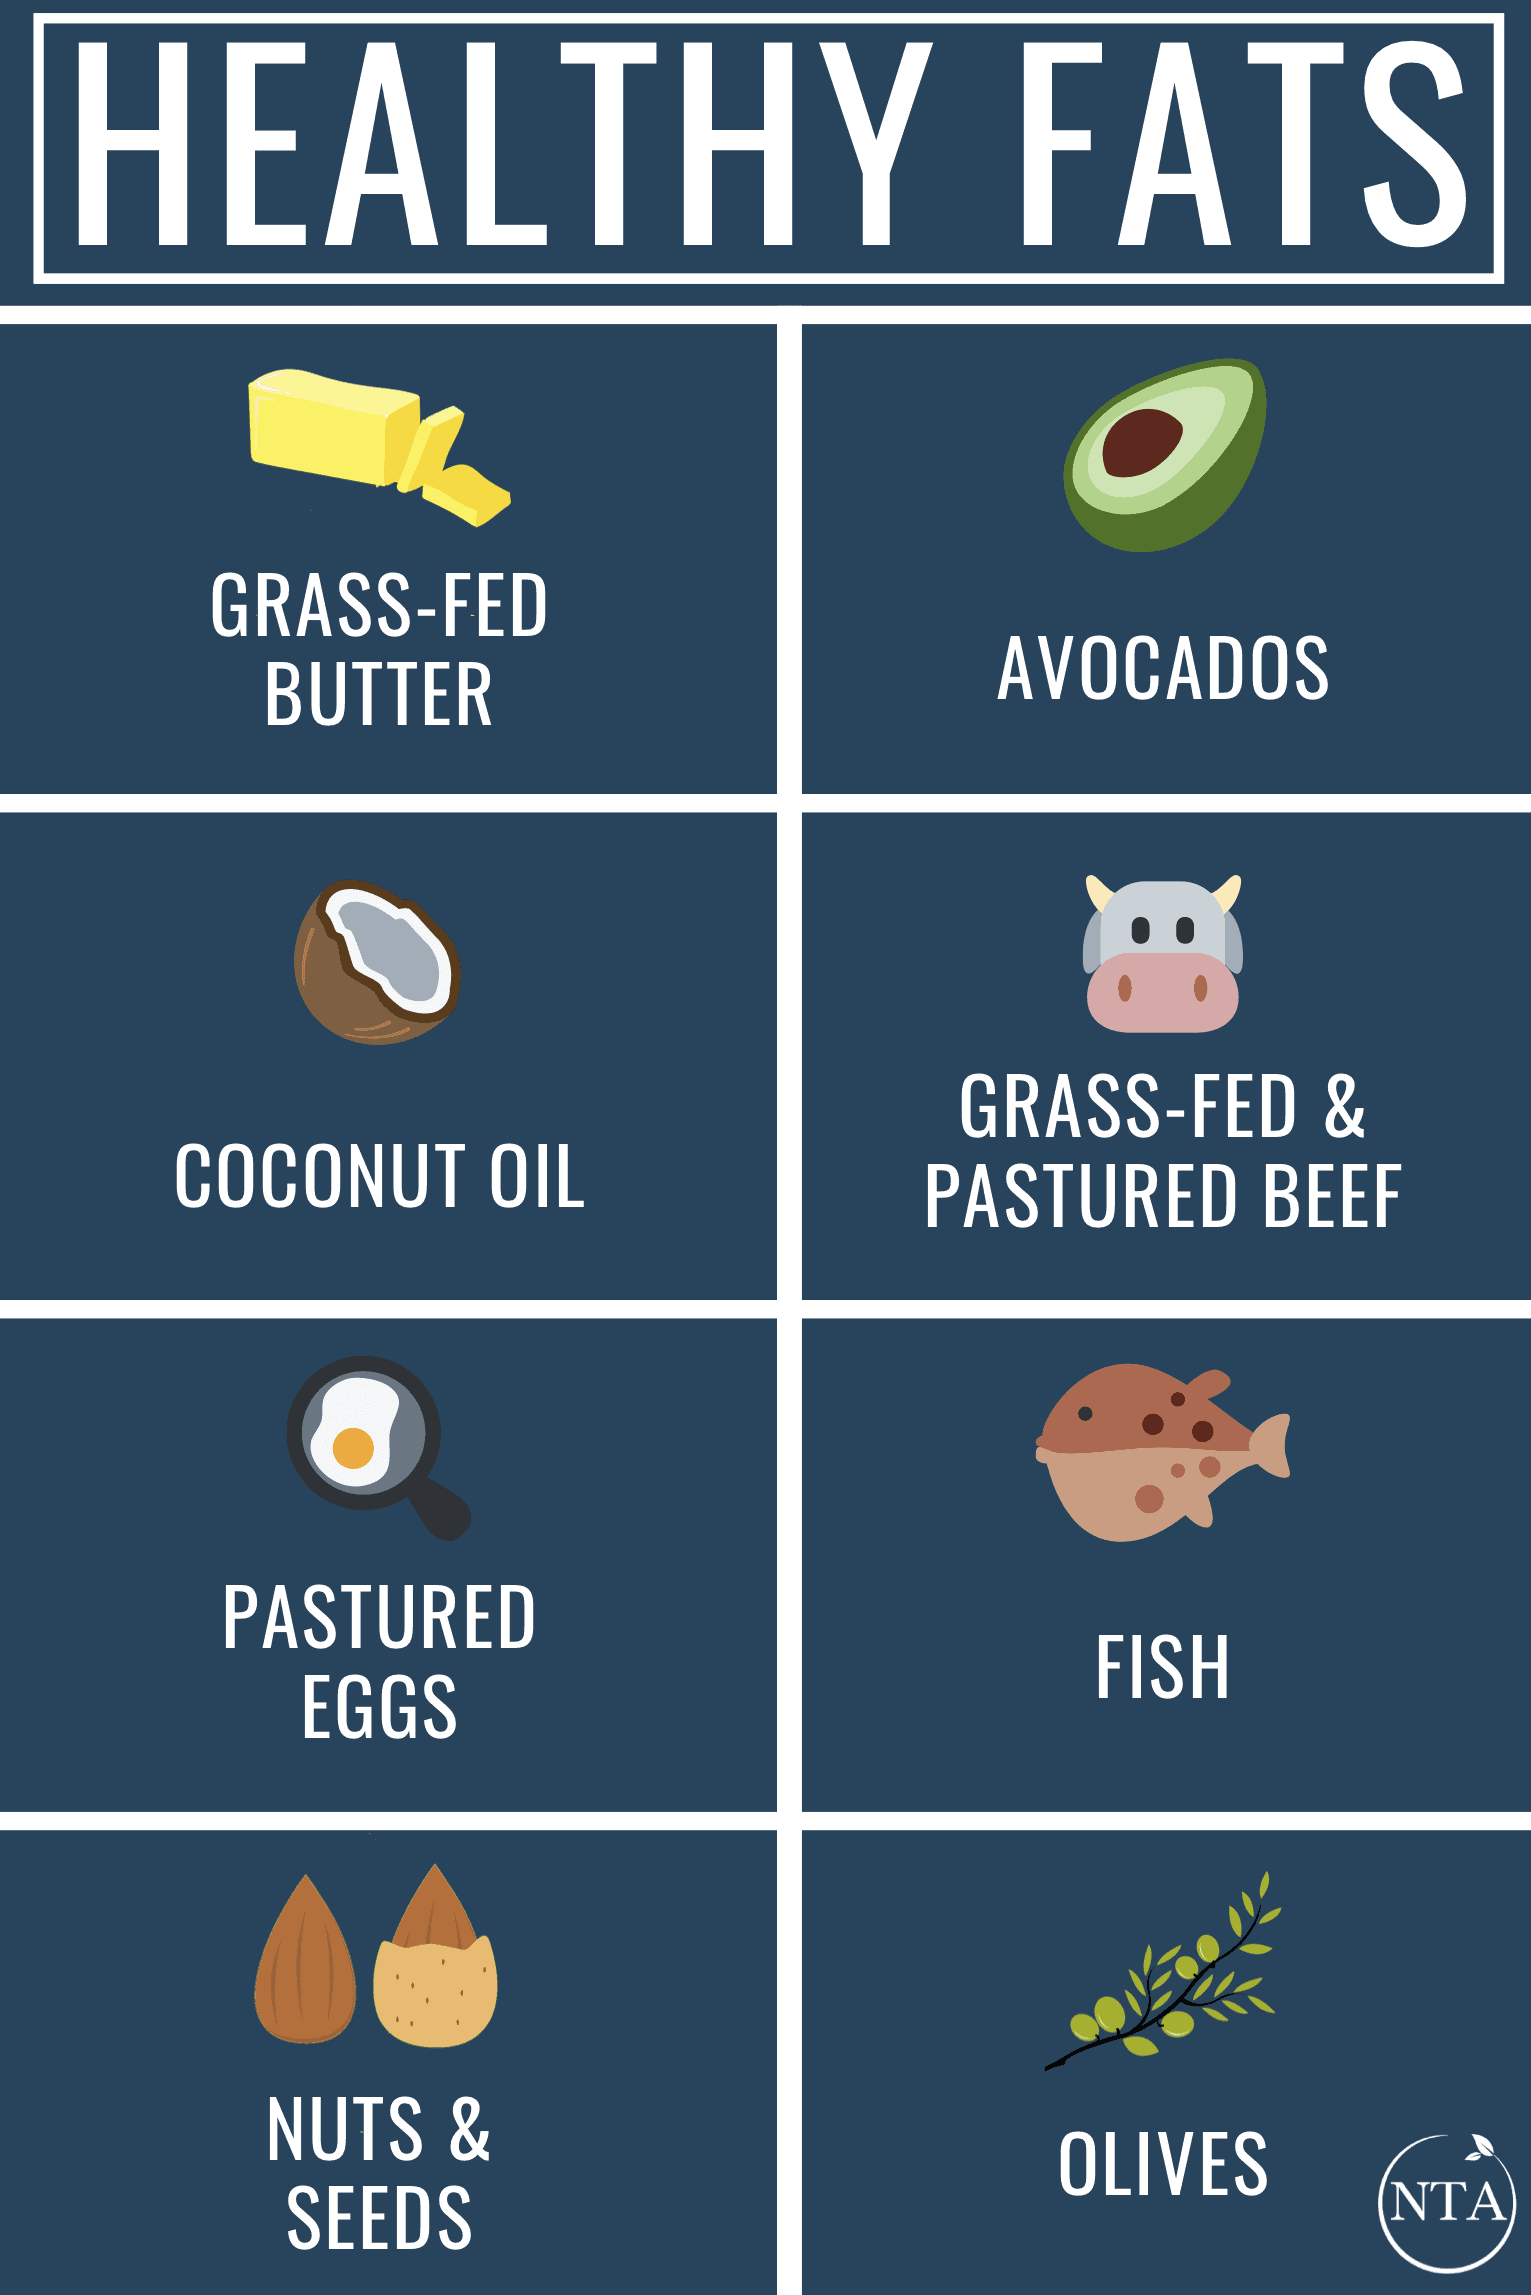 Healthy Fats Infographic